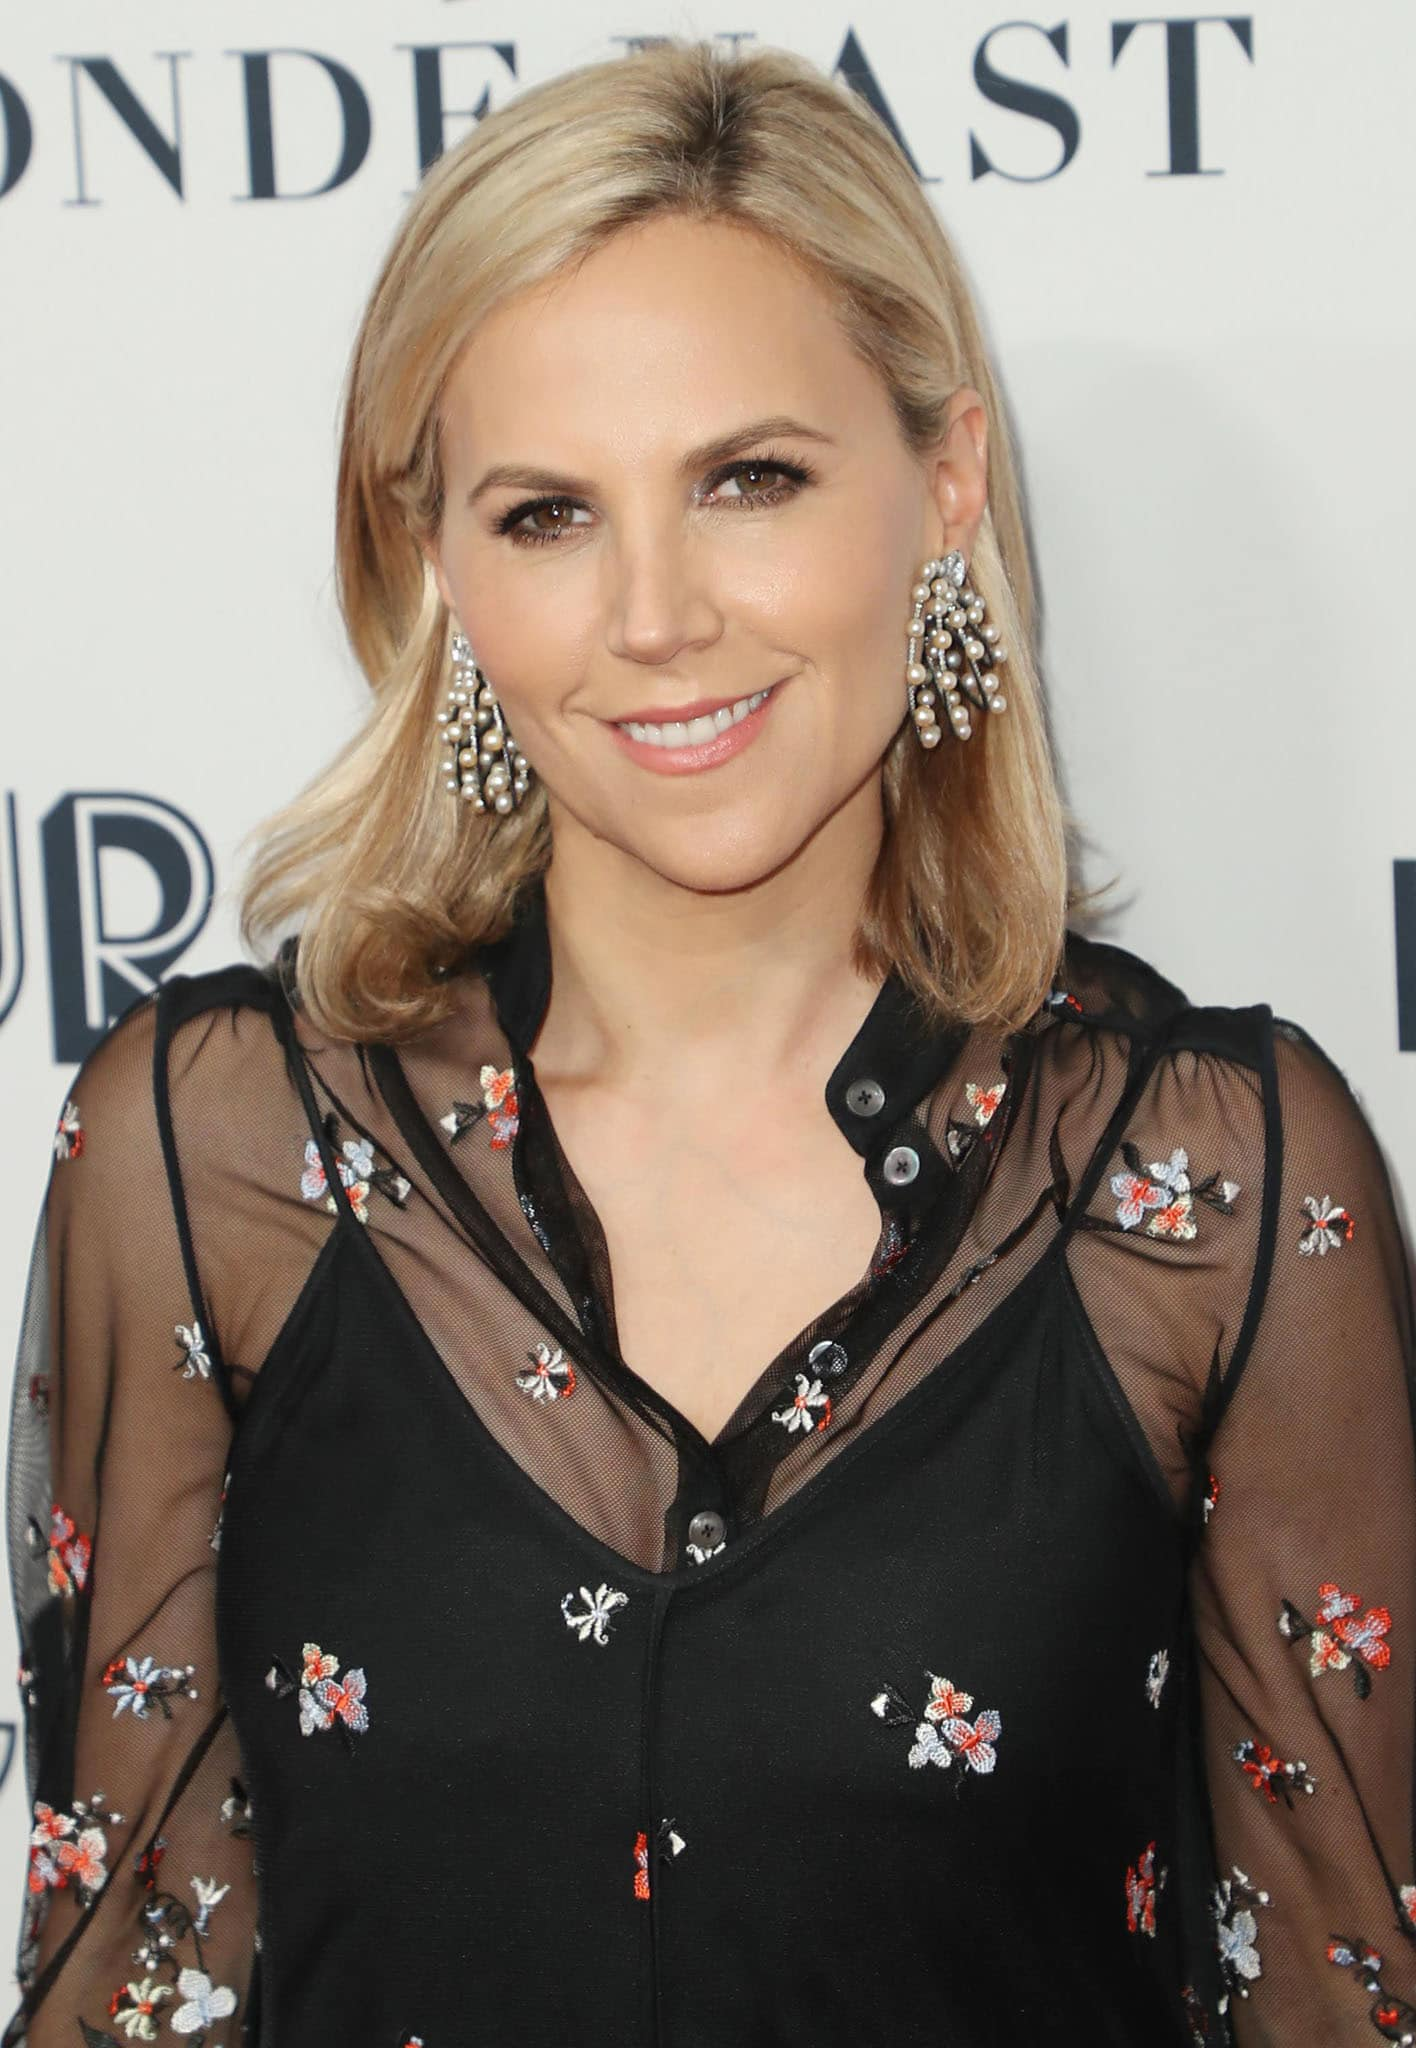 Tory Burch at the Glamour 2019 Women of the Year Awards on November 11, 2019